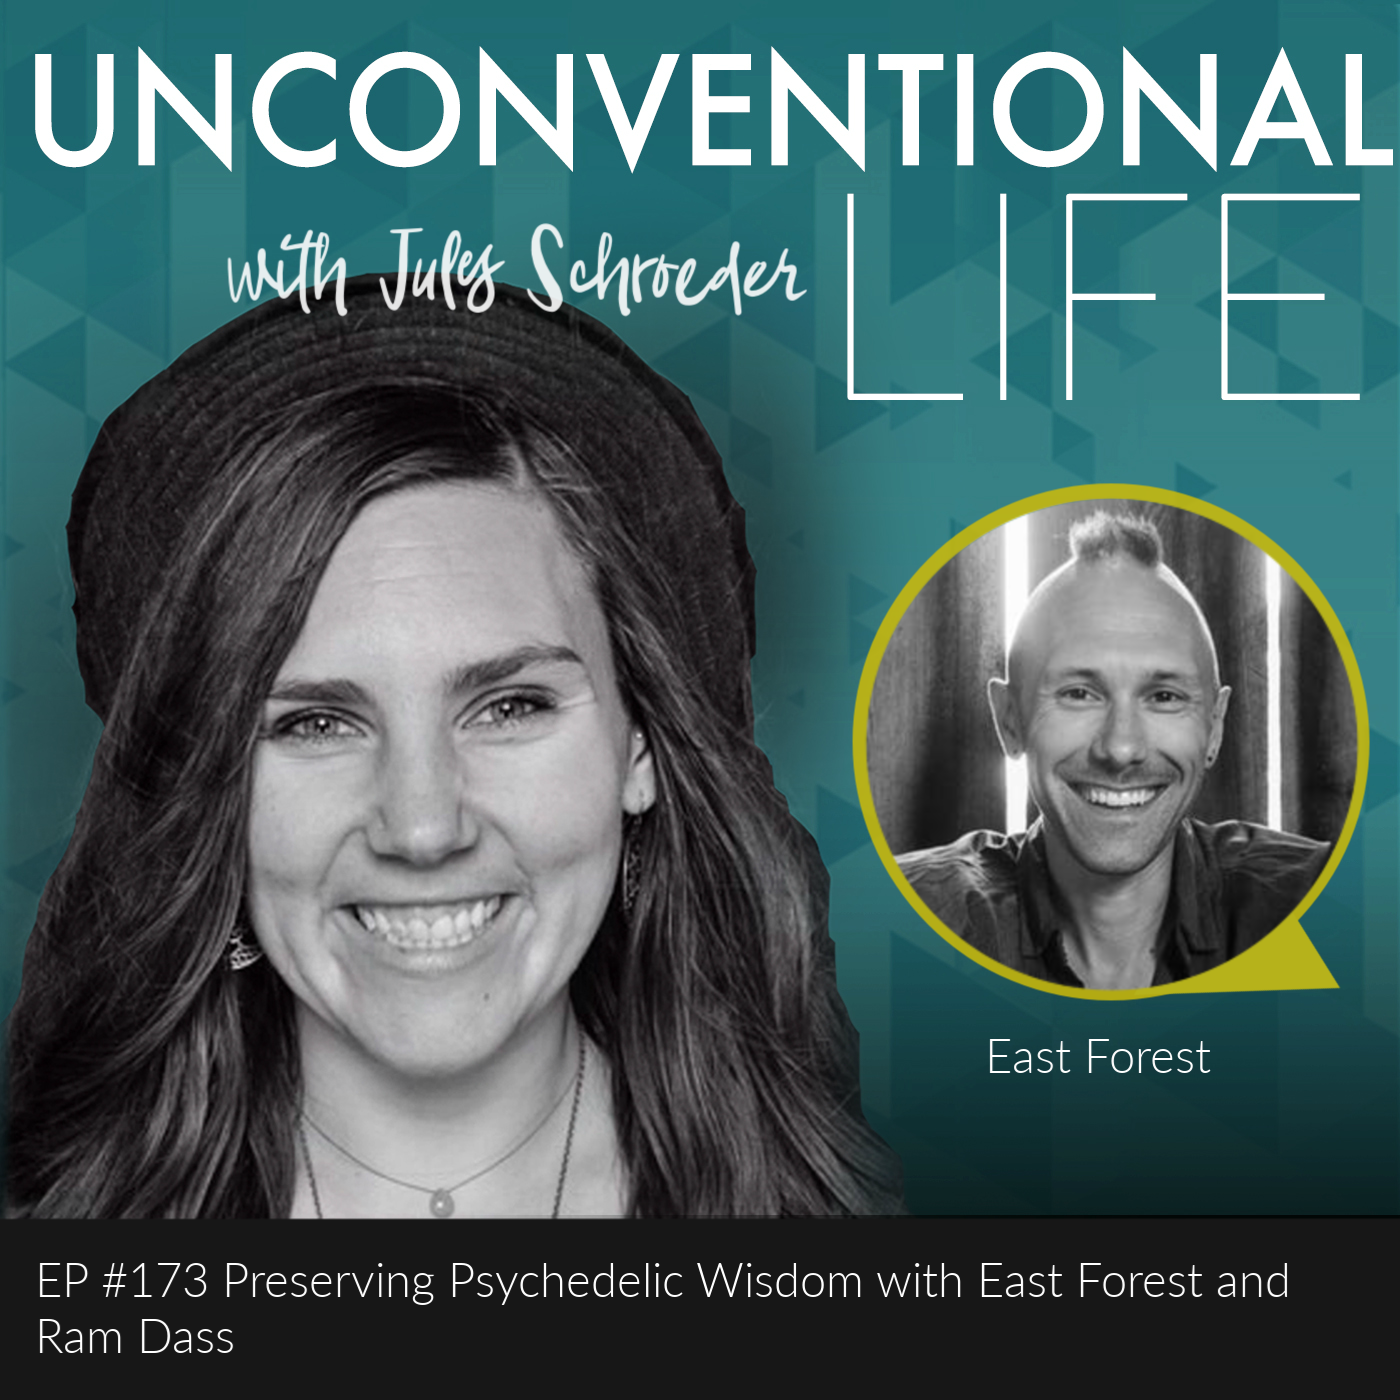 EP: Preserving Psychedelic Wisdom with East Forest and Ram Dass